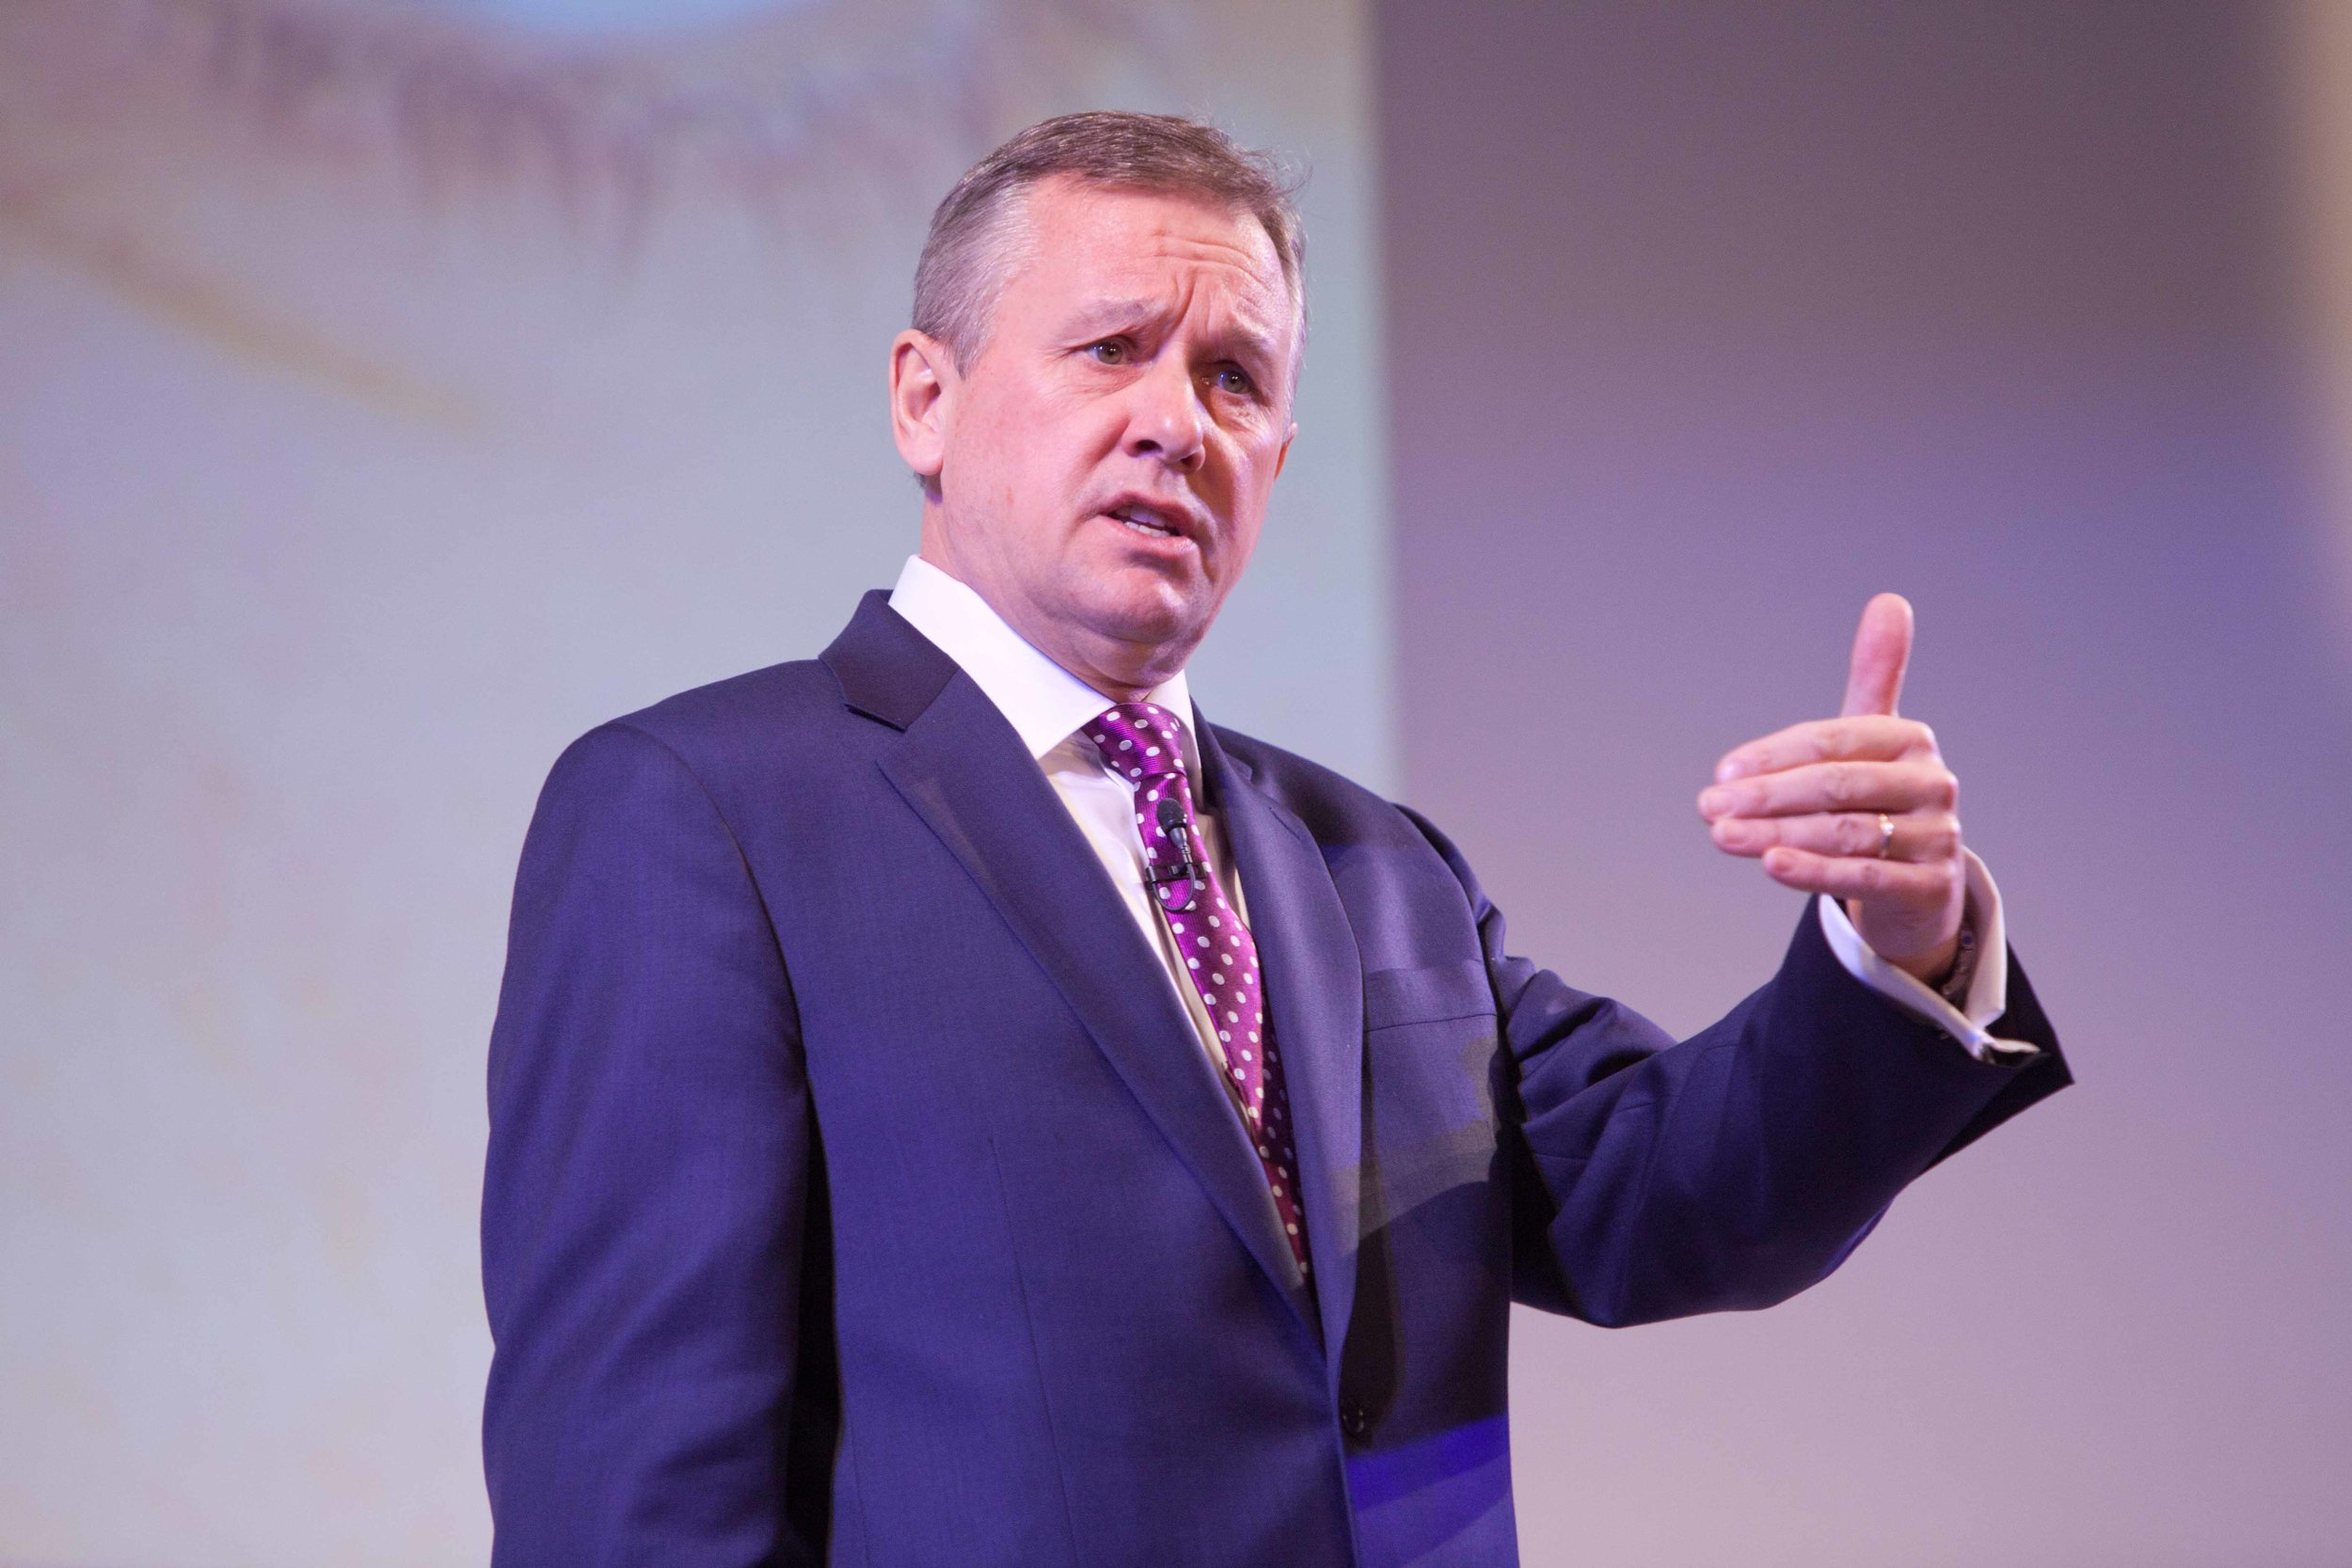 A HALF DAY SEMINAR WITH PHILIP HESKETH   WEDNESDAY 6 MARCH 2019  THE SHIP INN, SOUTHBANK BRISBANE QLD  TICKETS FROM $280   TICKET SALES CLICK HERE    If you are booking six tickets or more apply code GROUP2019 at checkout for a 10% discount.